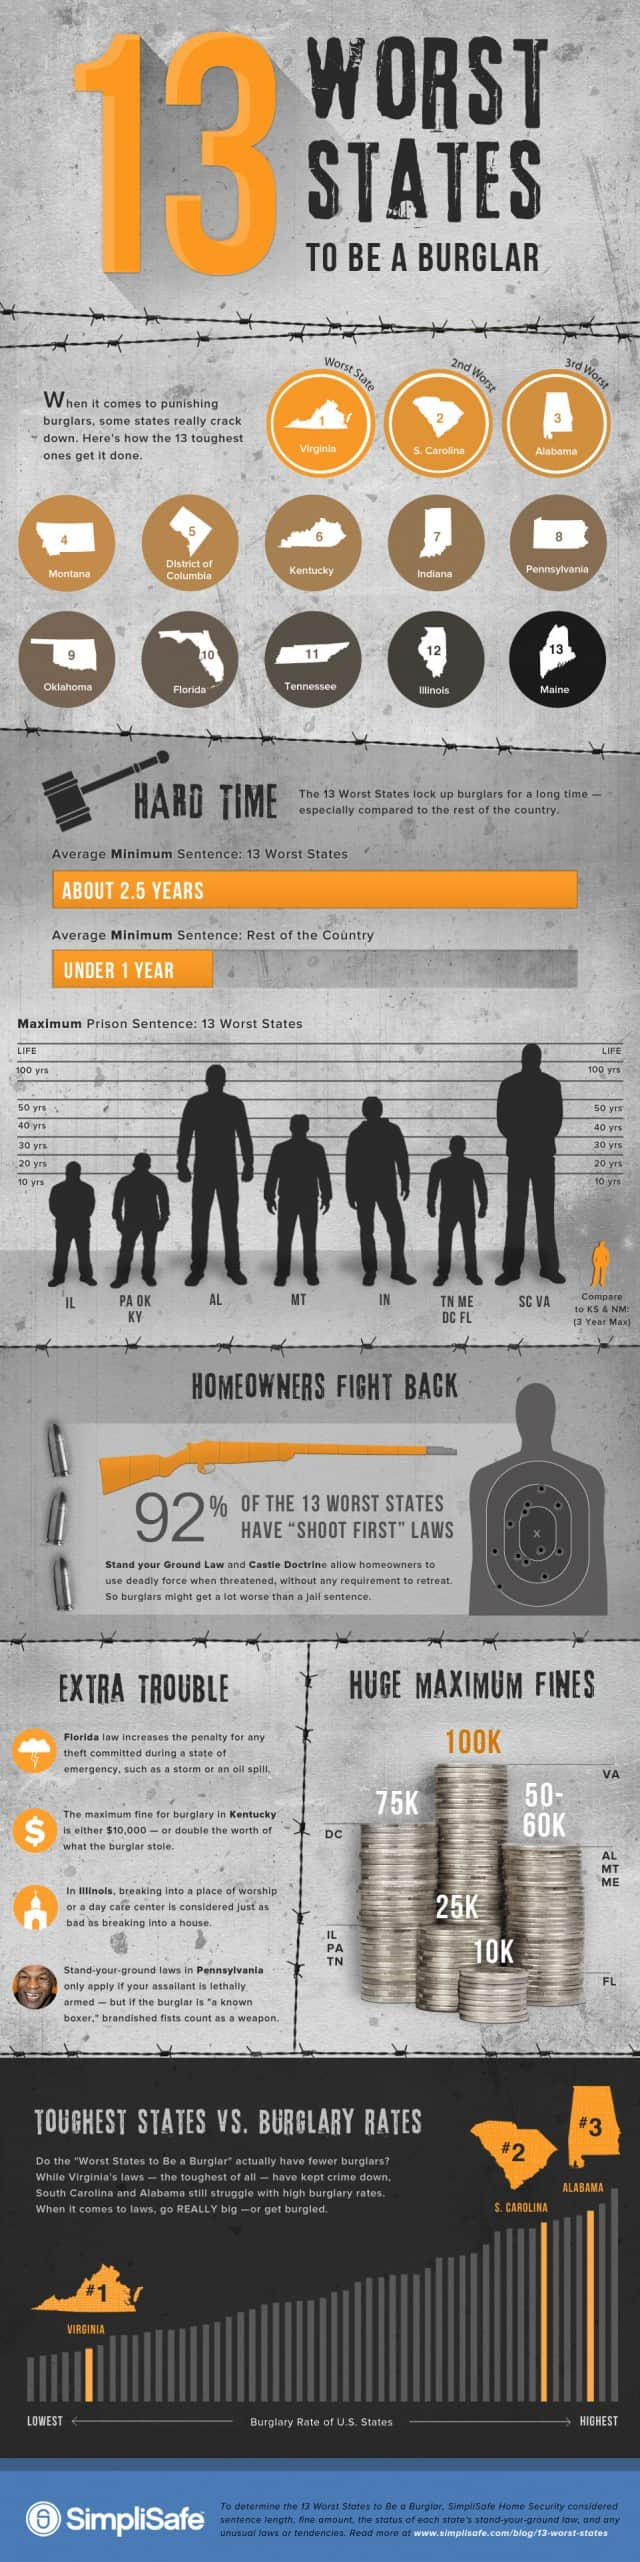 infographic_final1-640x2562